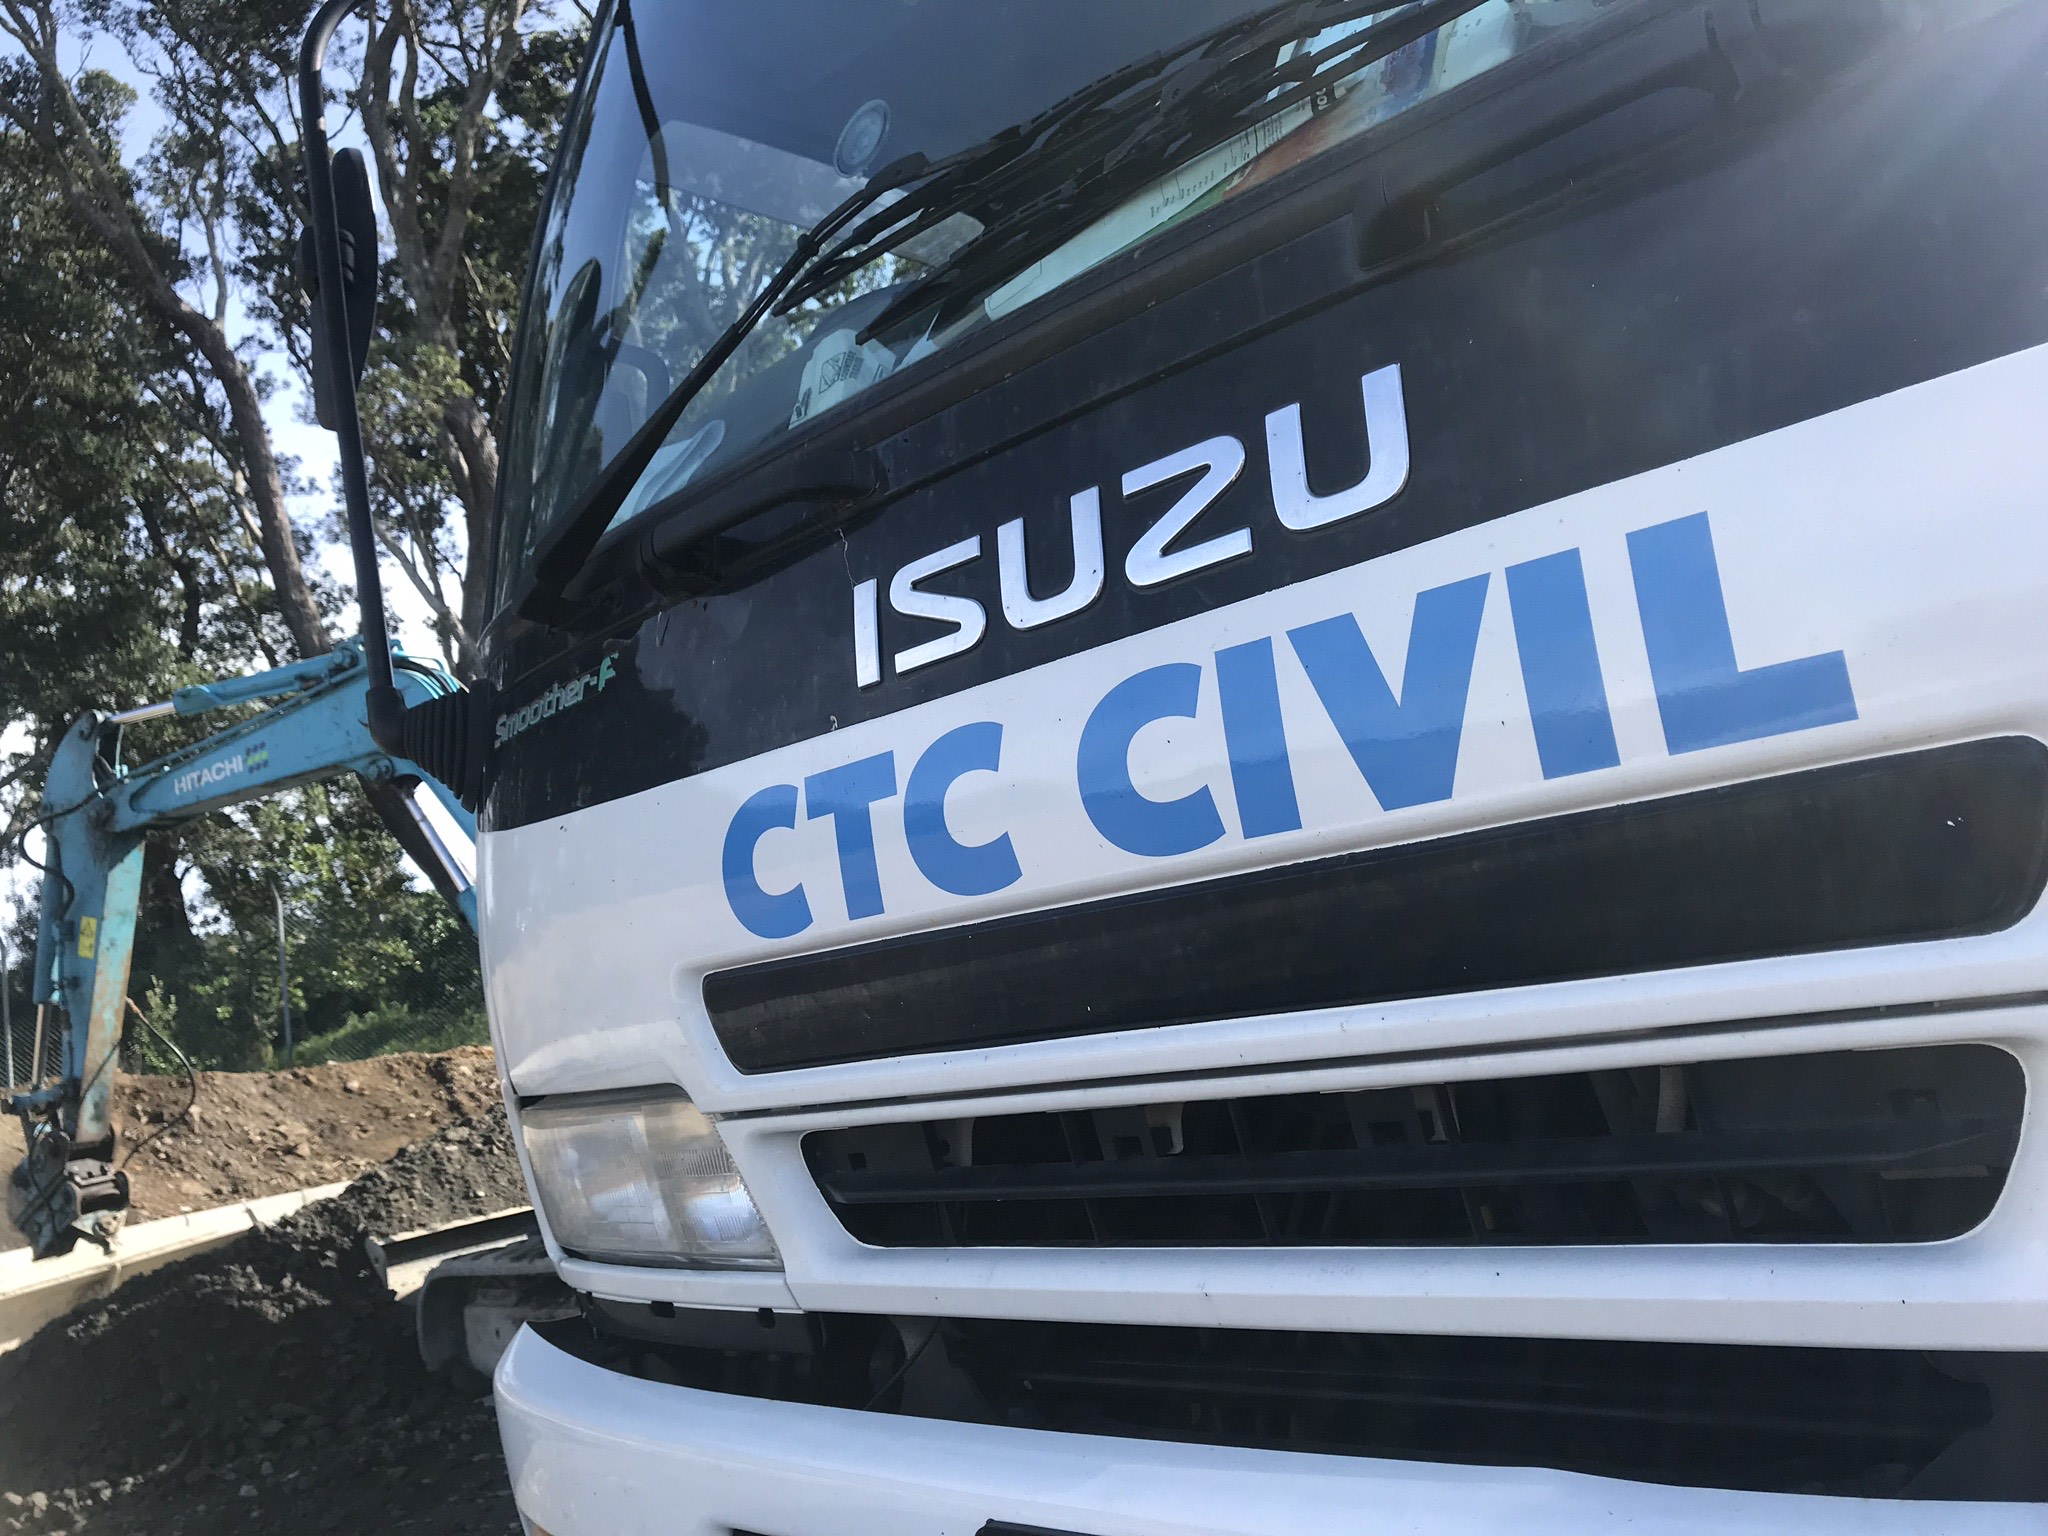 CTC Civil